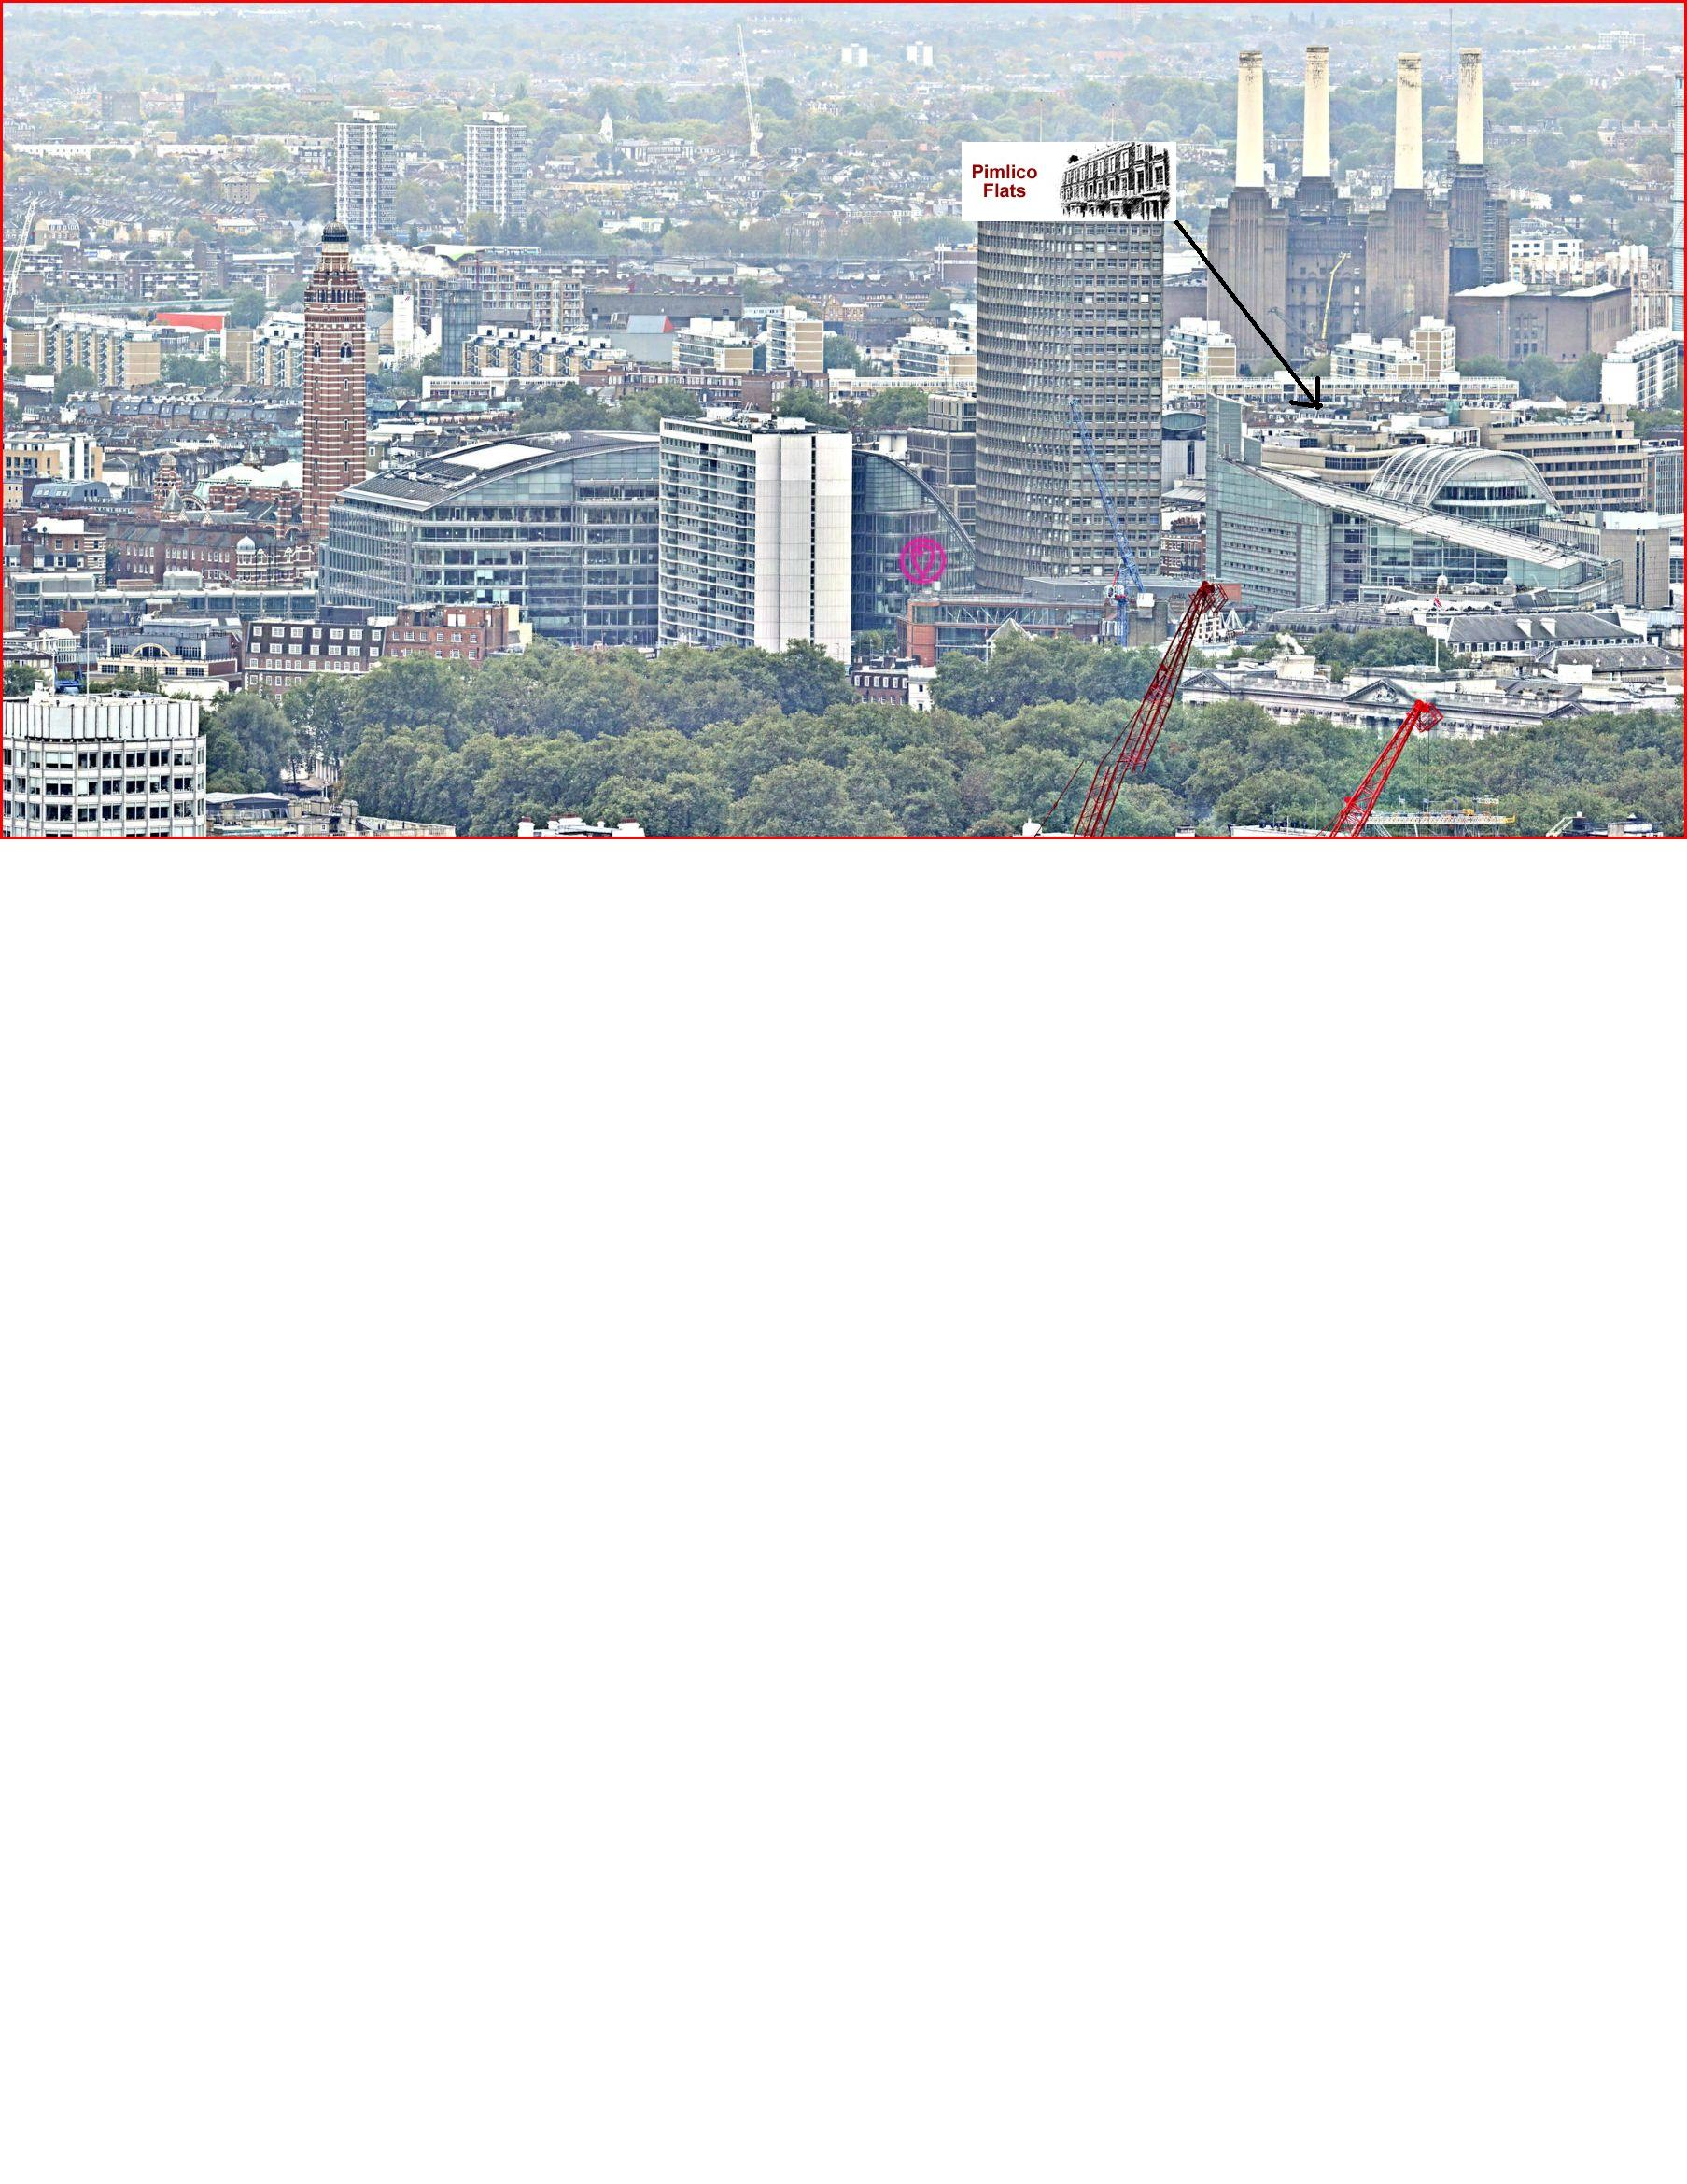 BT Tower Panorama